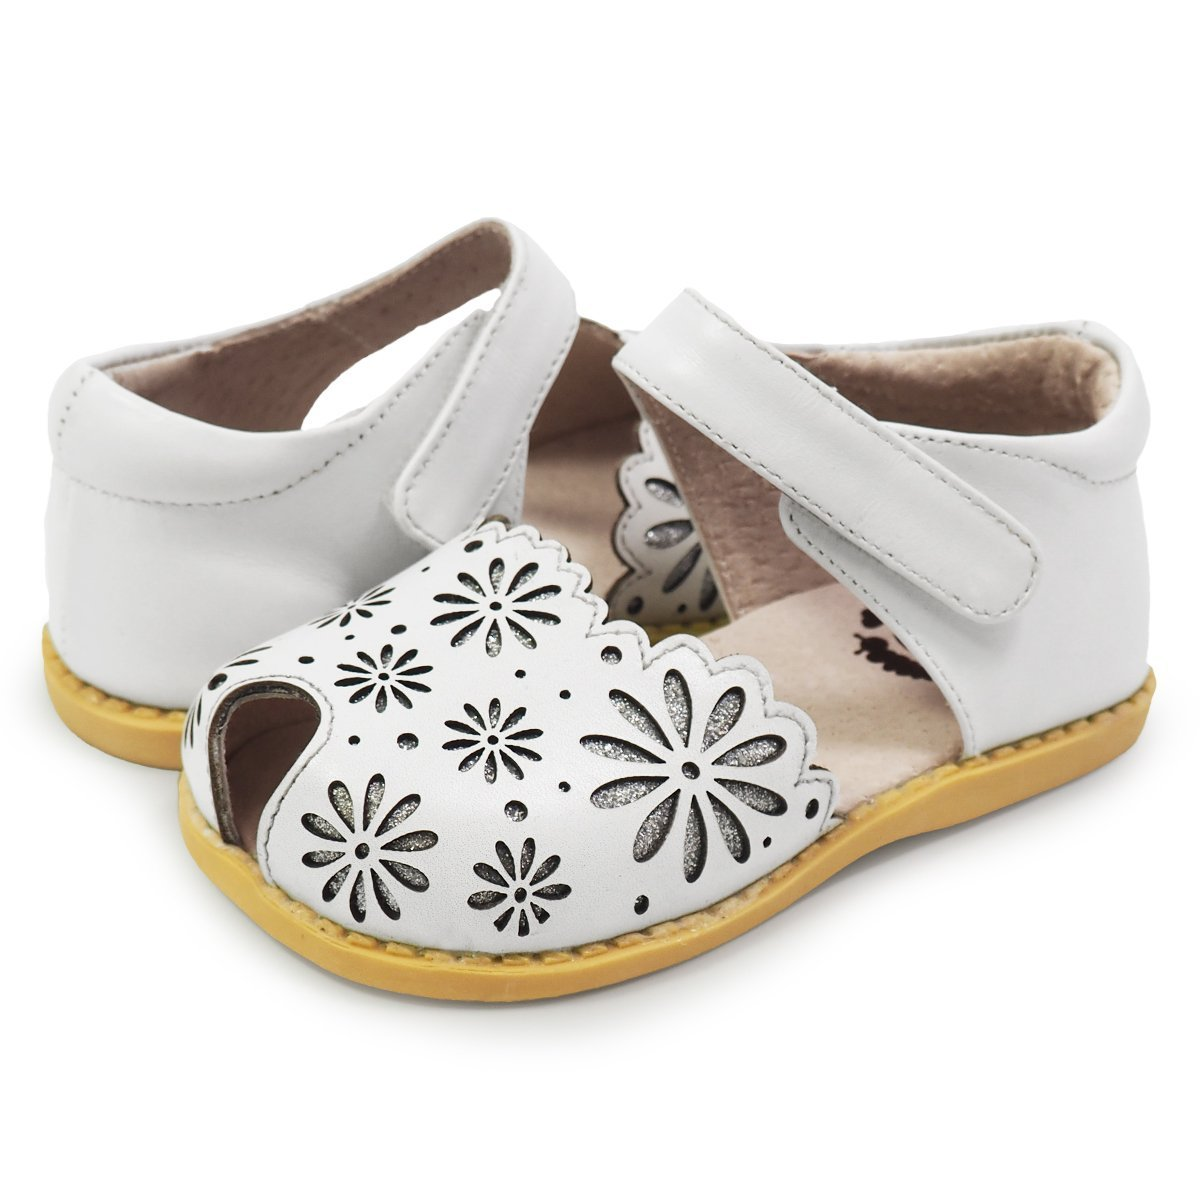 Livie & Luca New Children Low-Heeled Party Toddler Mary Jane Boat Shoes Girls Baby Breathable Kids Leather Single enlarge